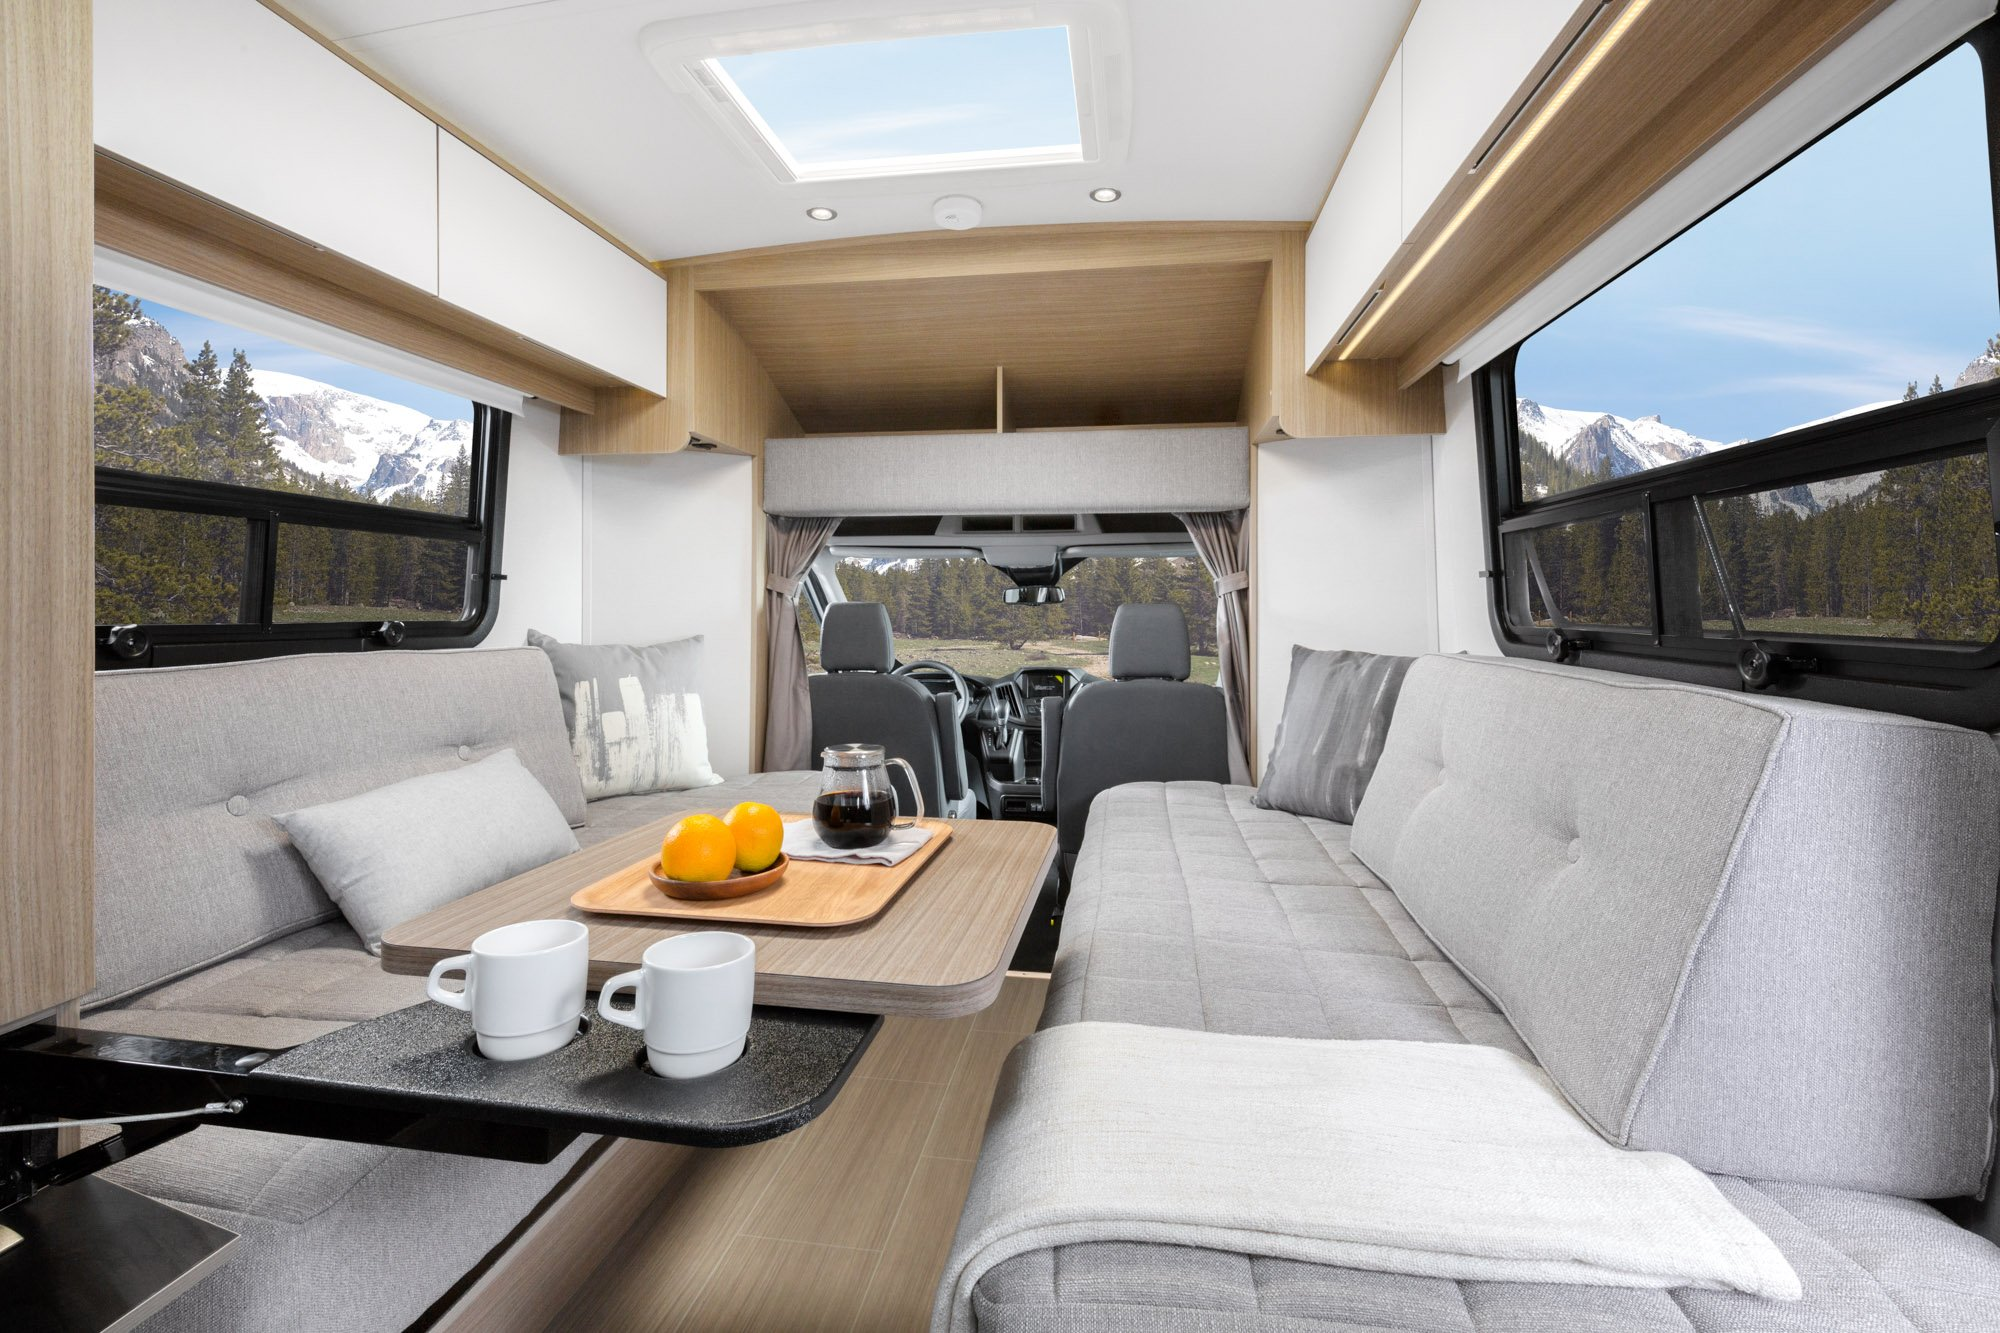 Adds A New Innovative Twin Bed Model To The Wonder Lineup Revolutionary RV With European Interior Styling Built On North American Ford